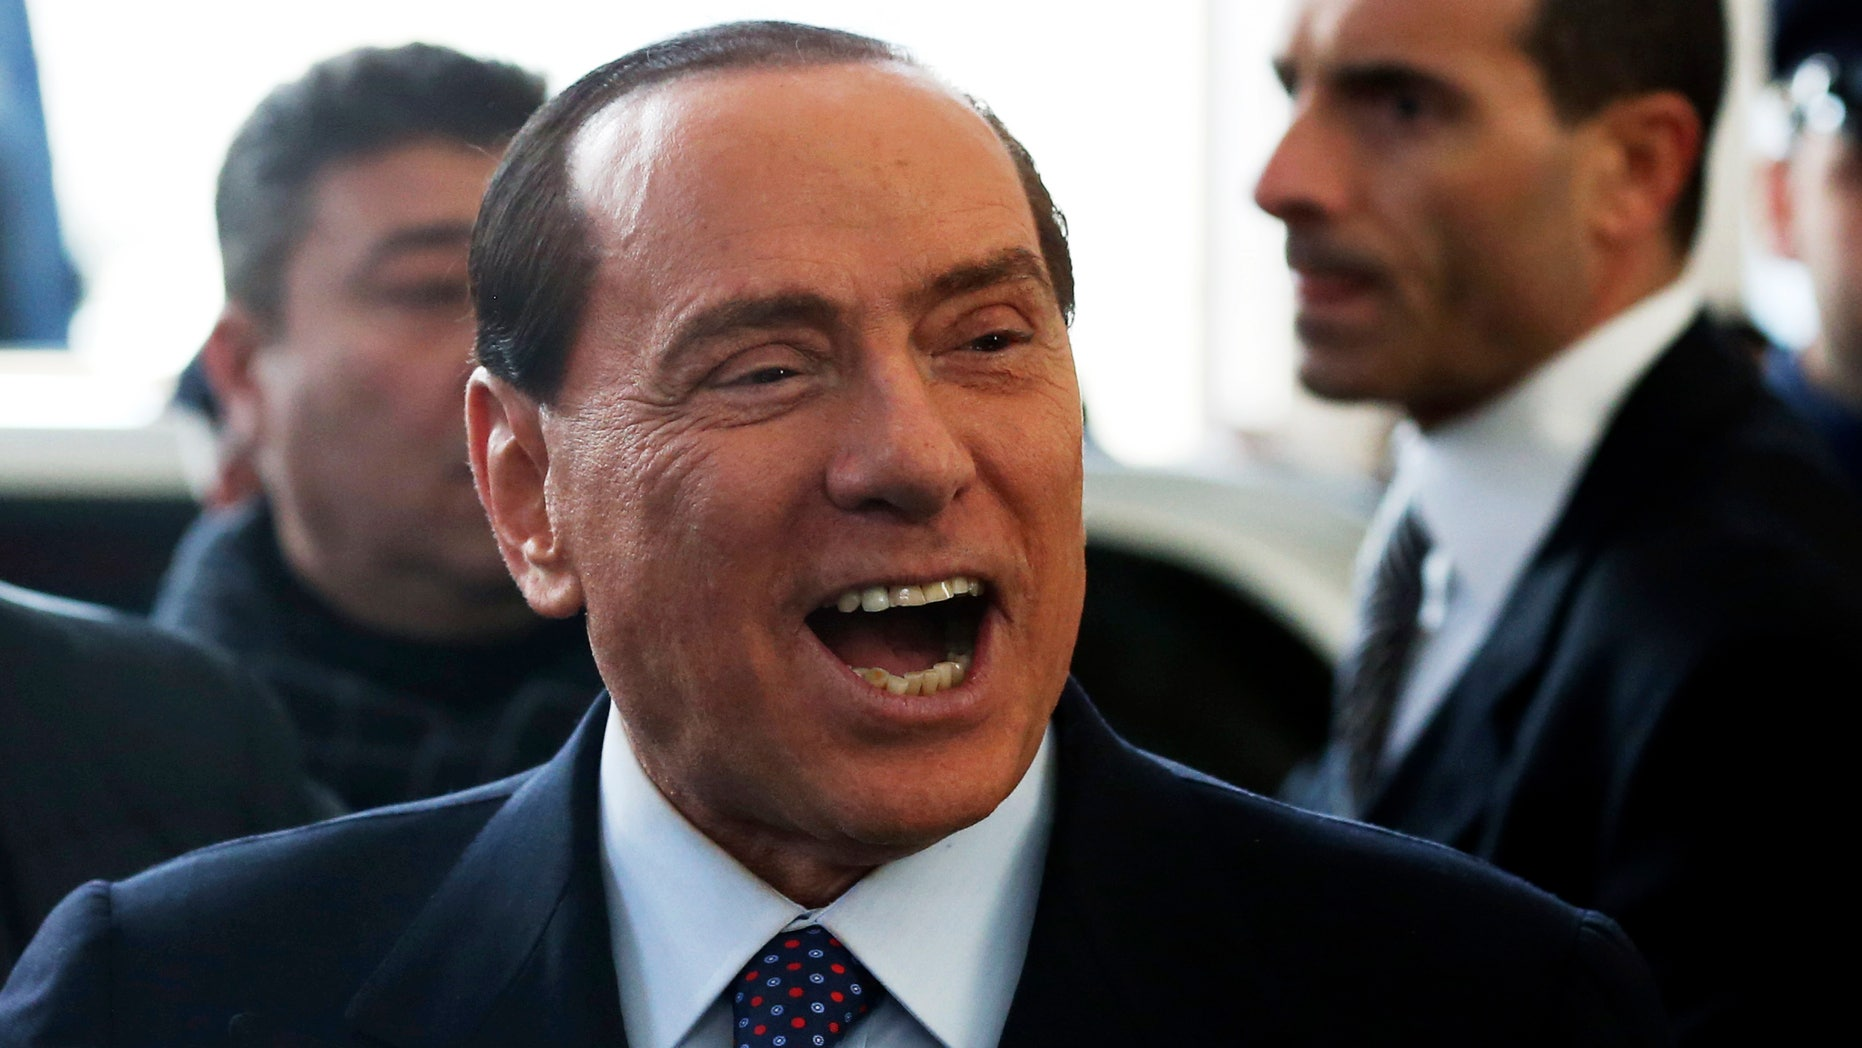 """Former Italian premier Silvio Berlusconi smiles as he arrives at Milan's central train station, Italy, Saturday, Dec. 29, 2012. Italian Premier Mario Monti announced Friday he is heading a new campaign coalition made of up centrists, business leaders and pro-Vatican forces who back his """"ethical"""" vision of politics, aiming for a second mandate in office if his fledging reform movement wins big in parliamentary elections. Monti was appointed premier 13 months ago after his scandal-plagued predecessor Silvio Berlusconi failed to stop Italy from sliding deeper into the eurozone debt crisis. He quit earlier this month after Berlusconi pulled his party's support from Monti's government, but is now continuing in a caretaker role until the next elections. (AP Photo/Luca Bruno)"""